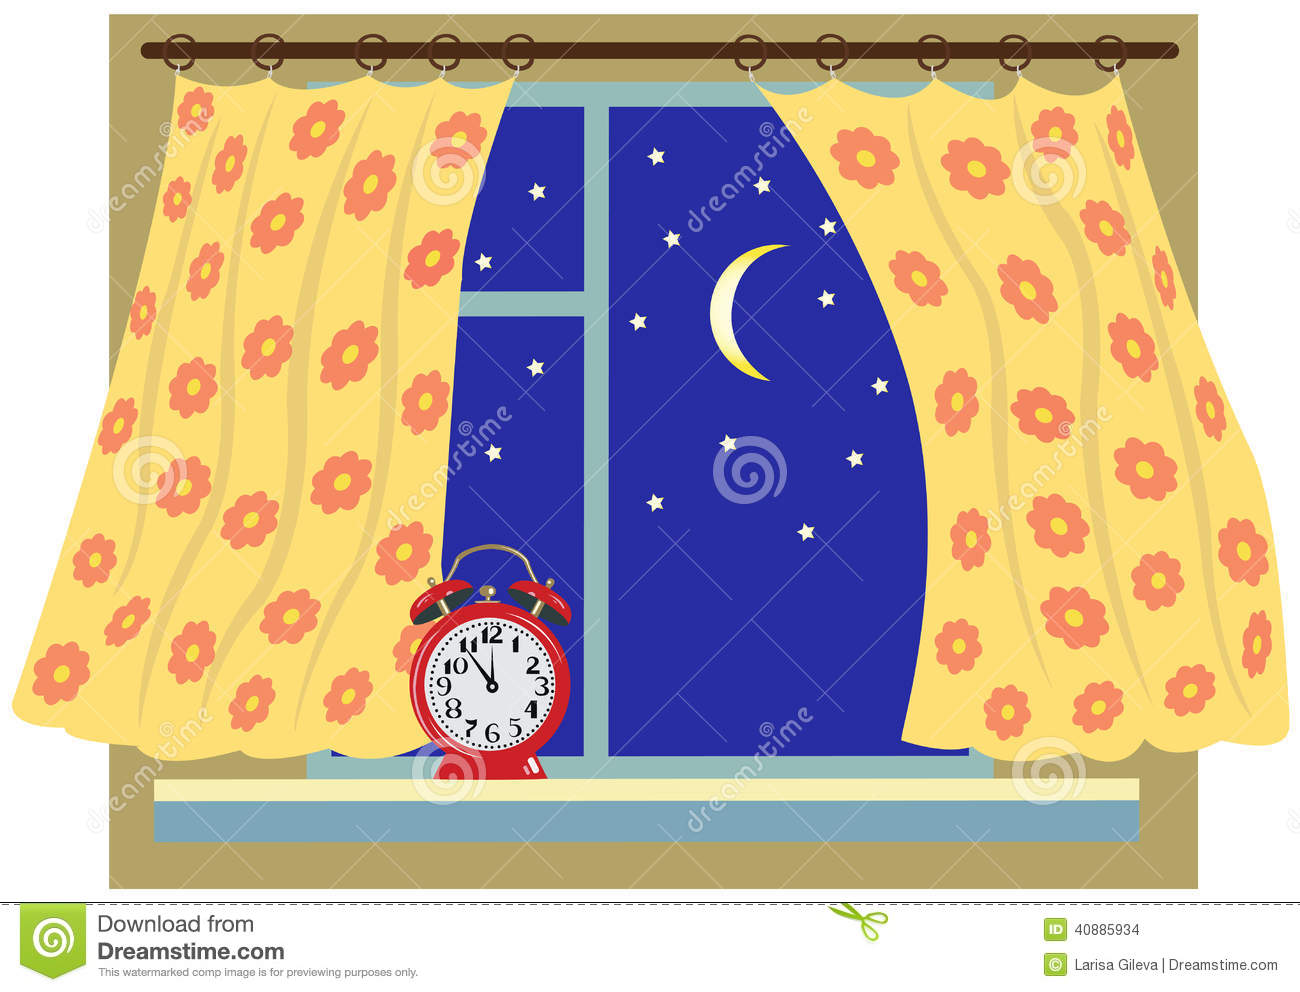 Night window clipart.